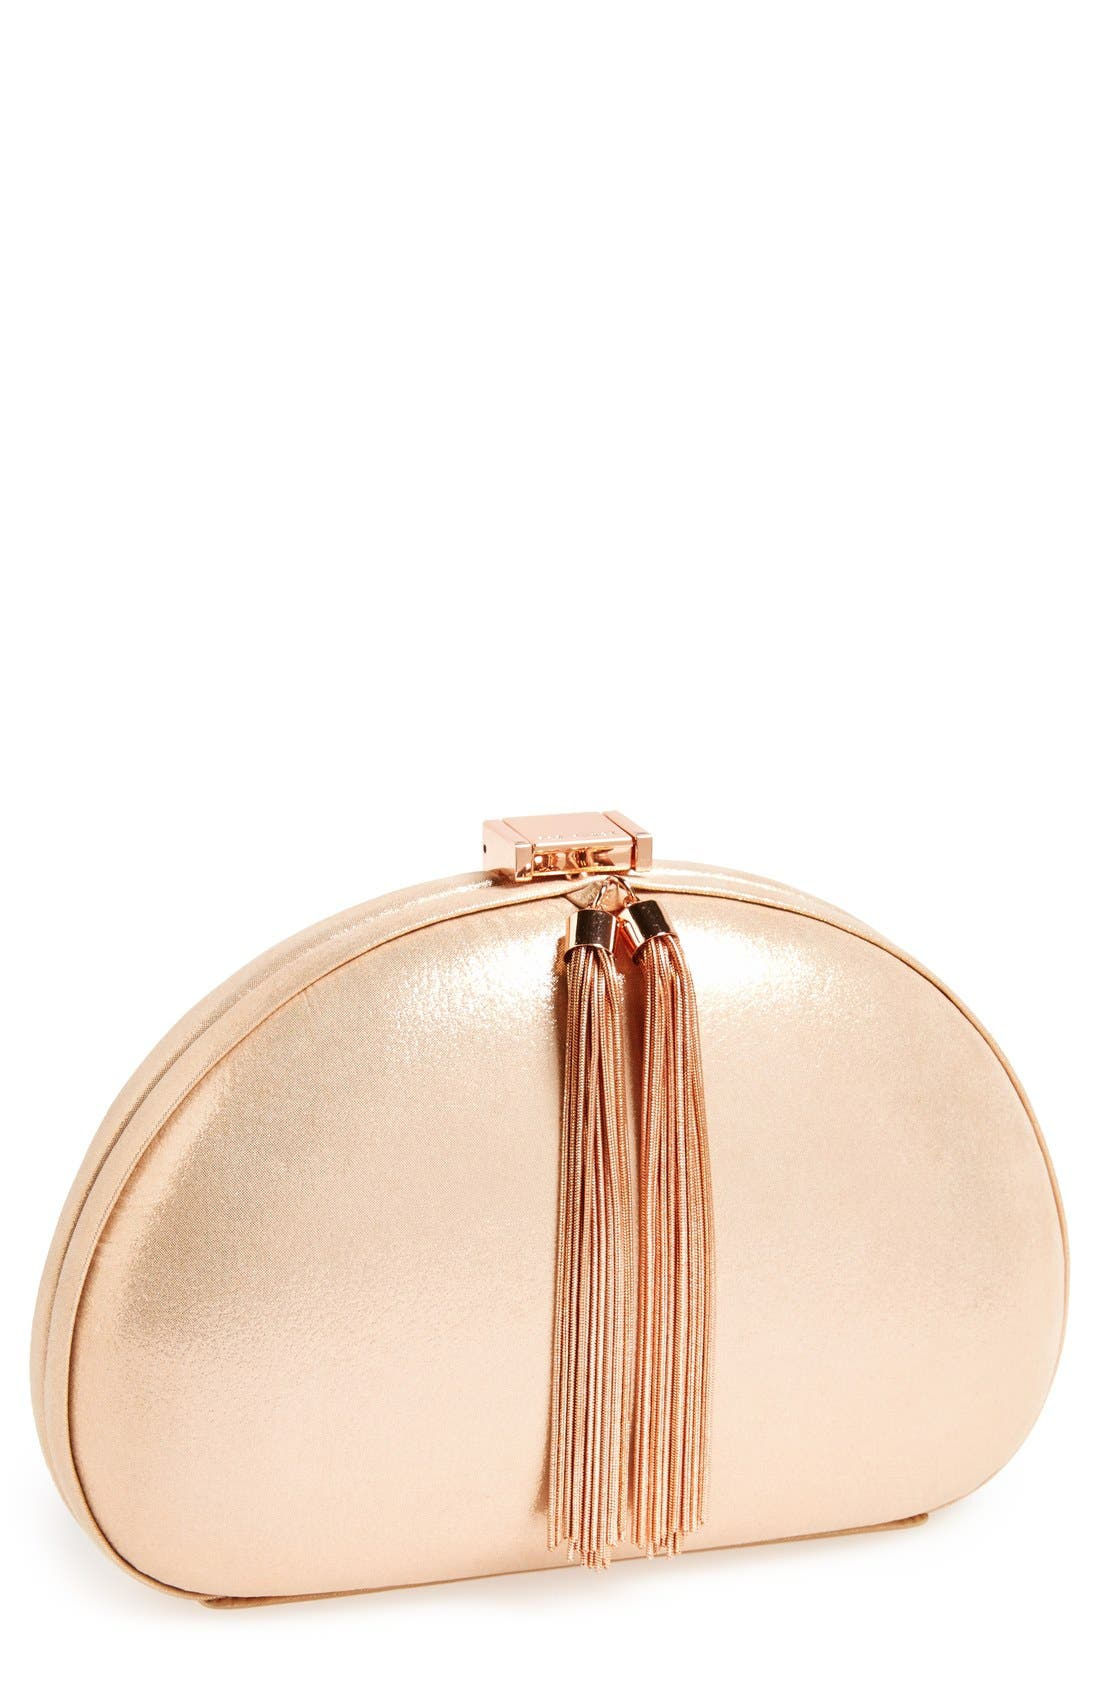 Alternate Image 1 Selected - Ted Baker London Rounded Tassel Clutch